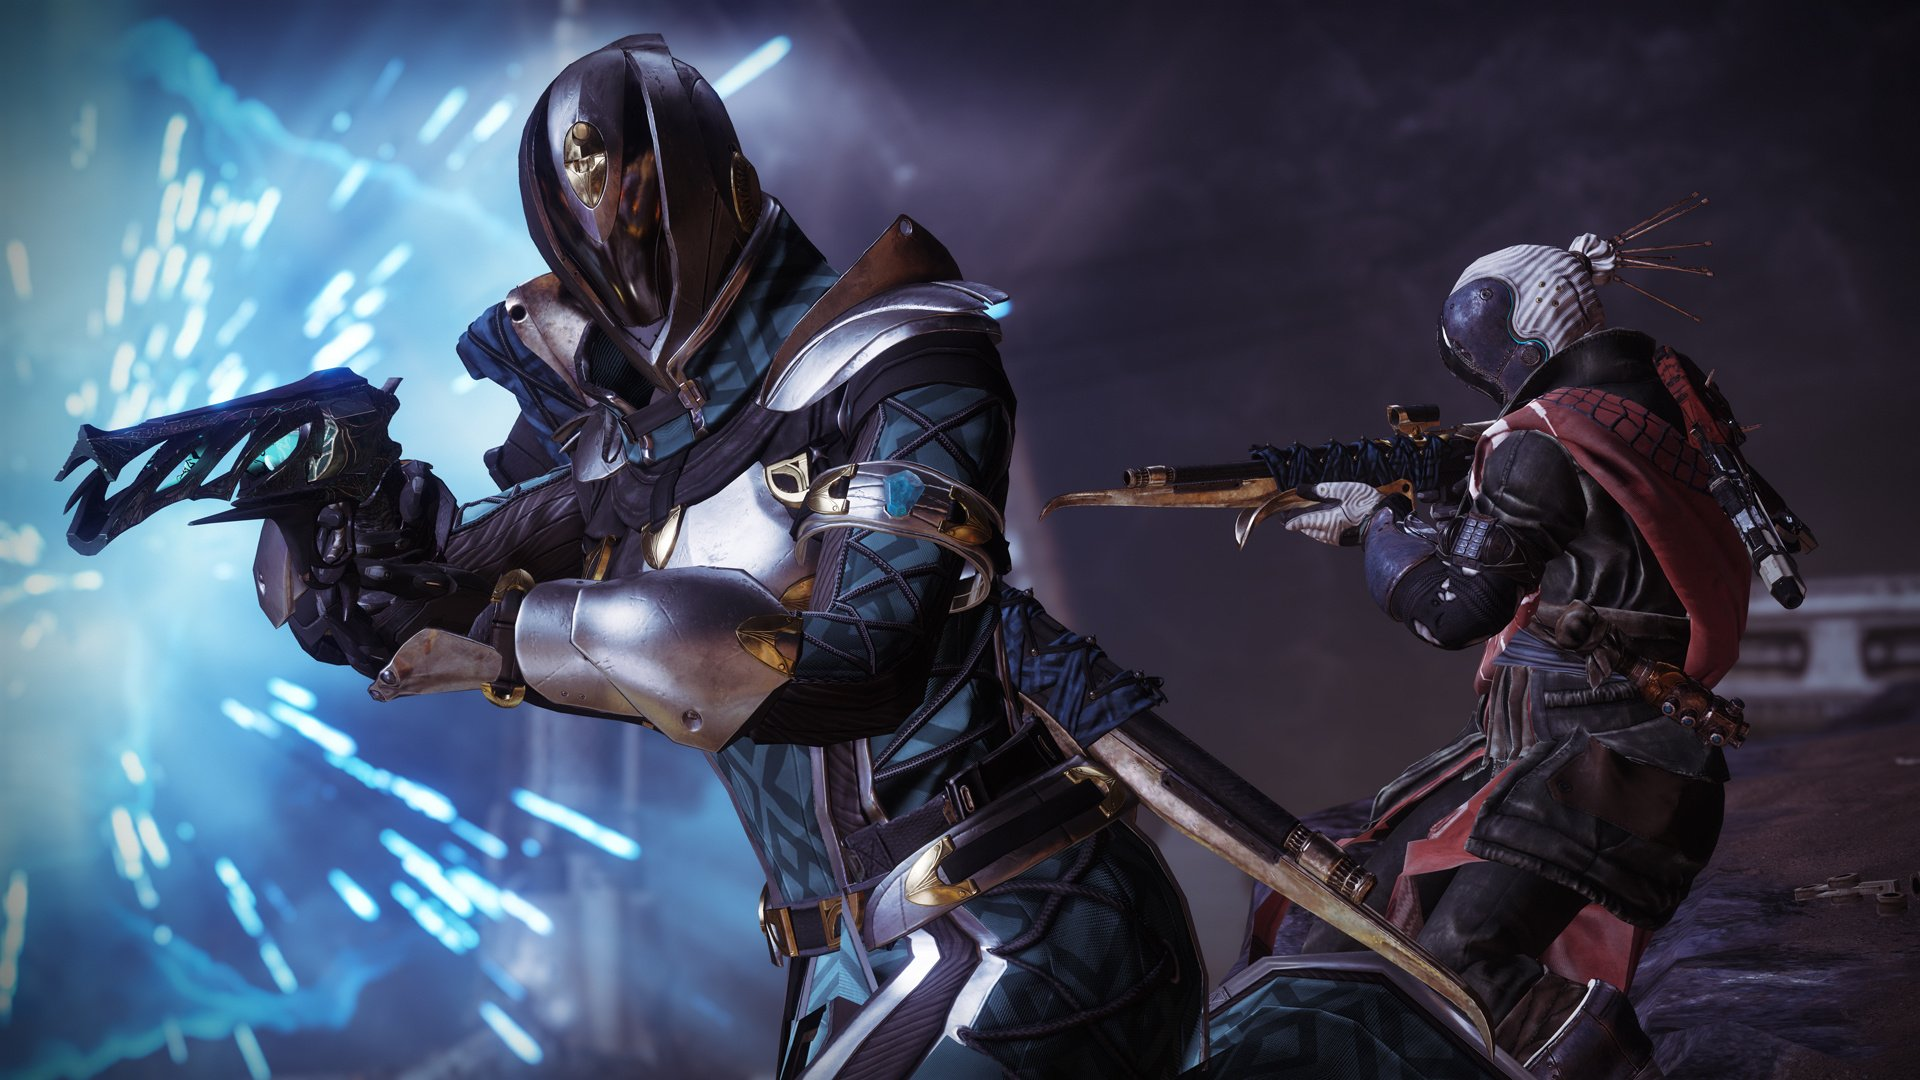 How to watch the Destiny 2 reveal stream today